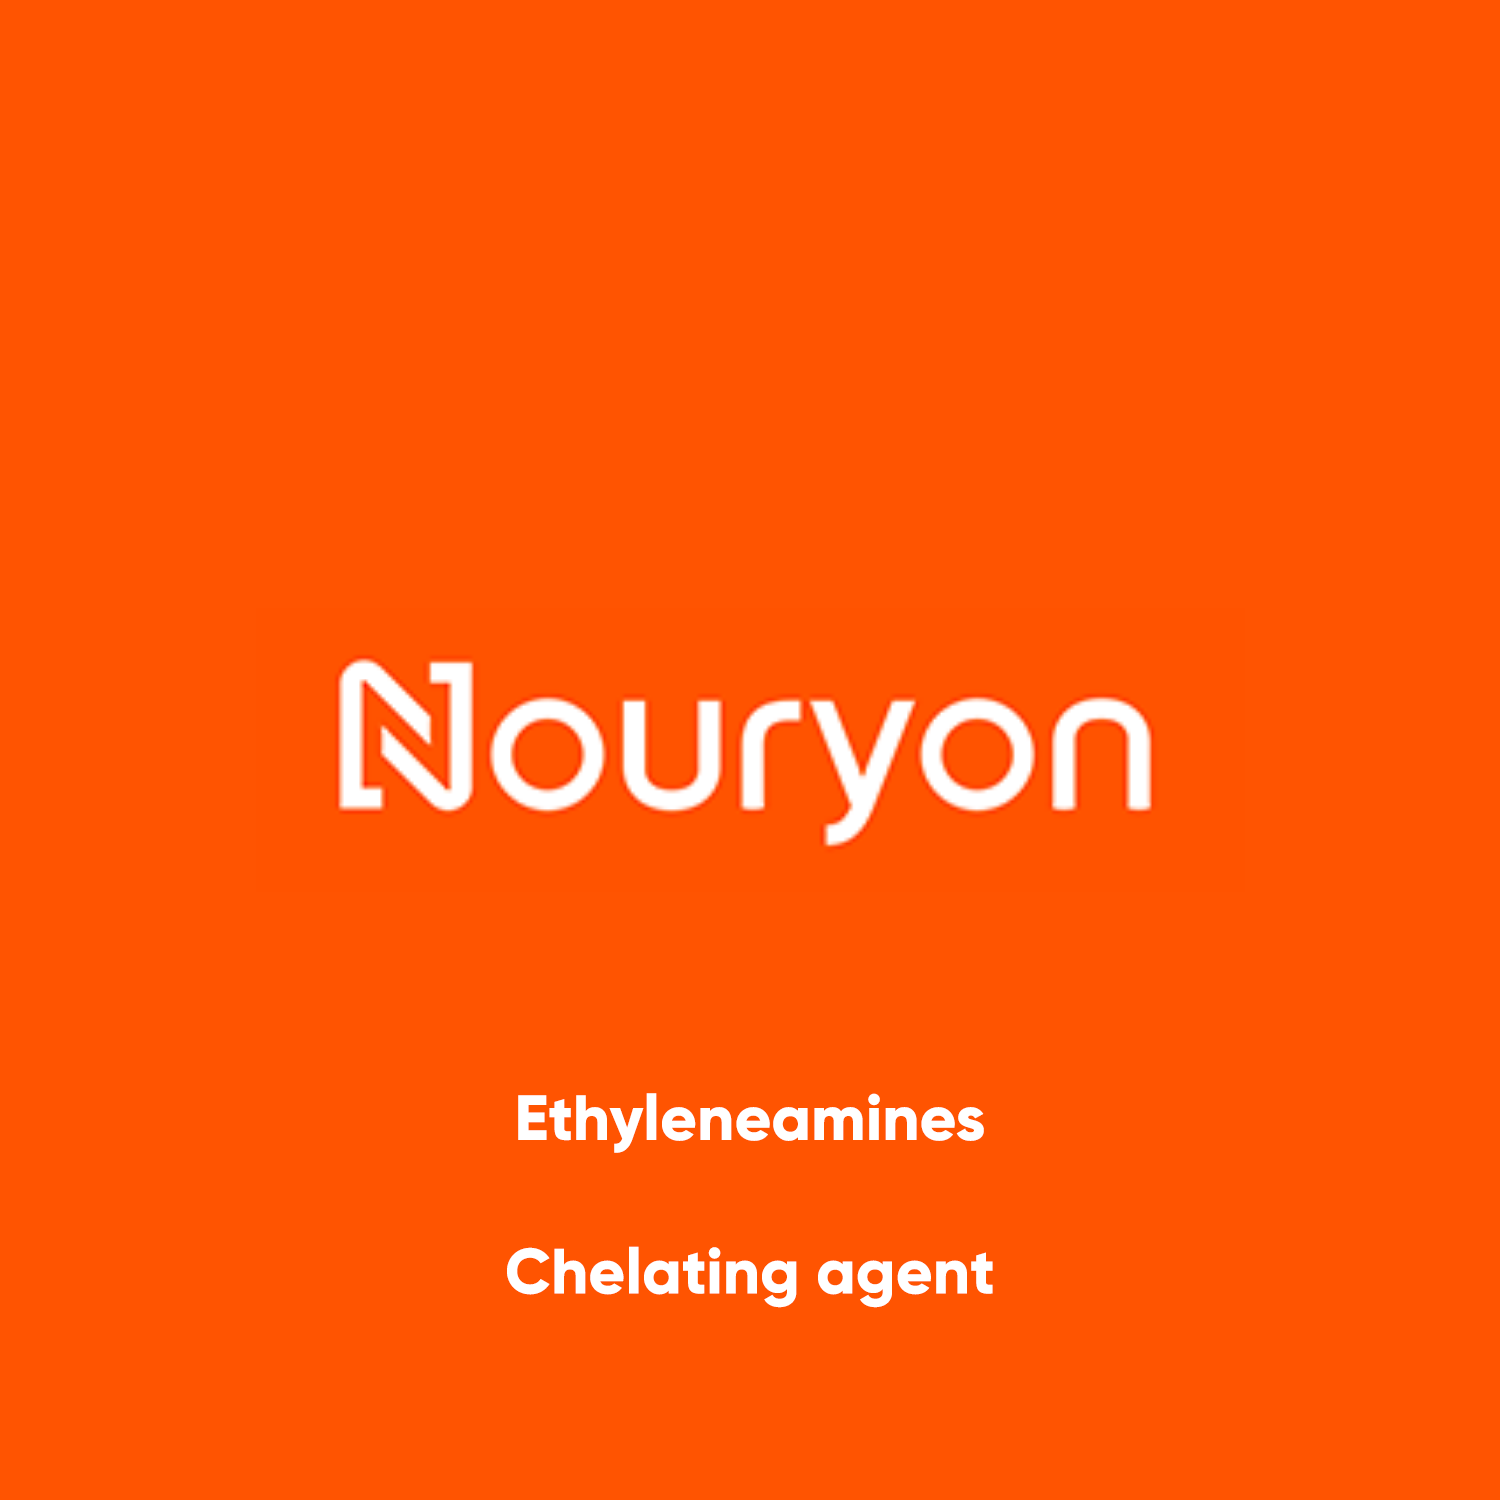 Nouryon Ethyleamines, Chelating agent